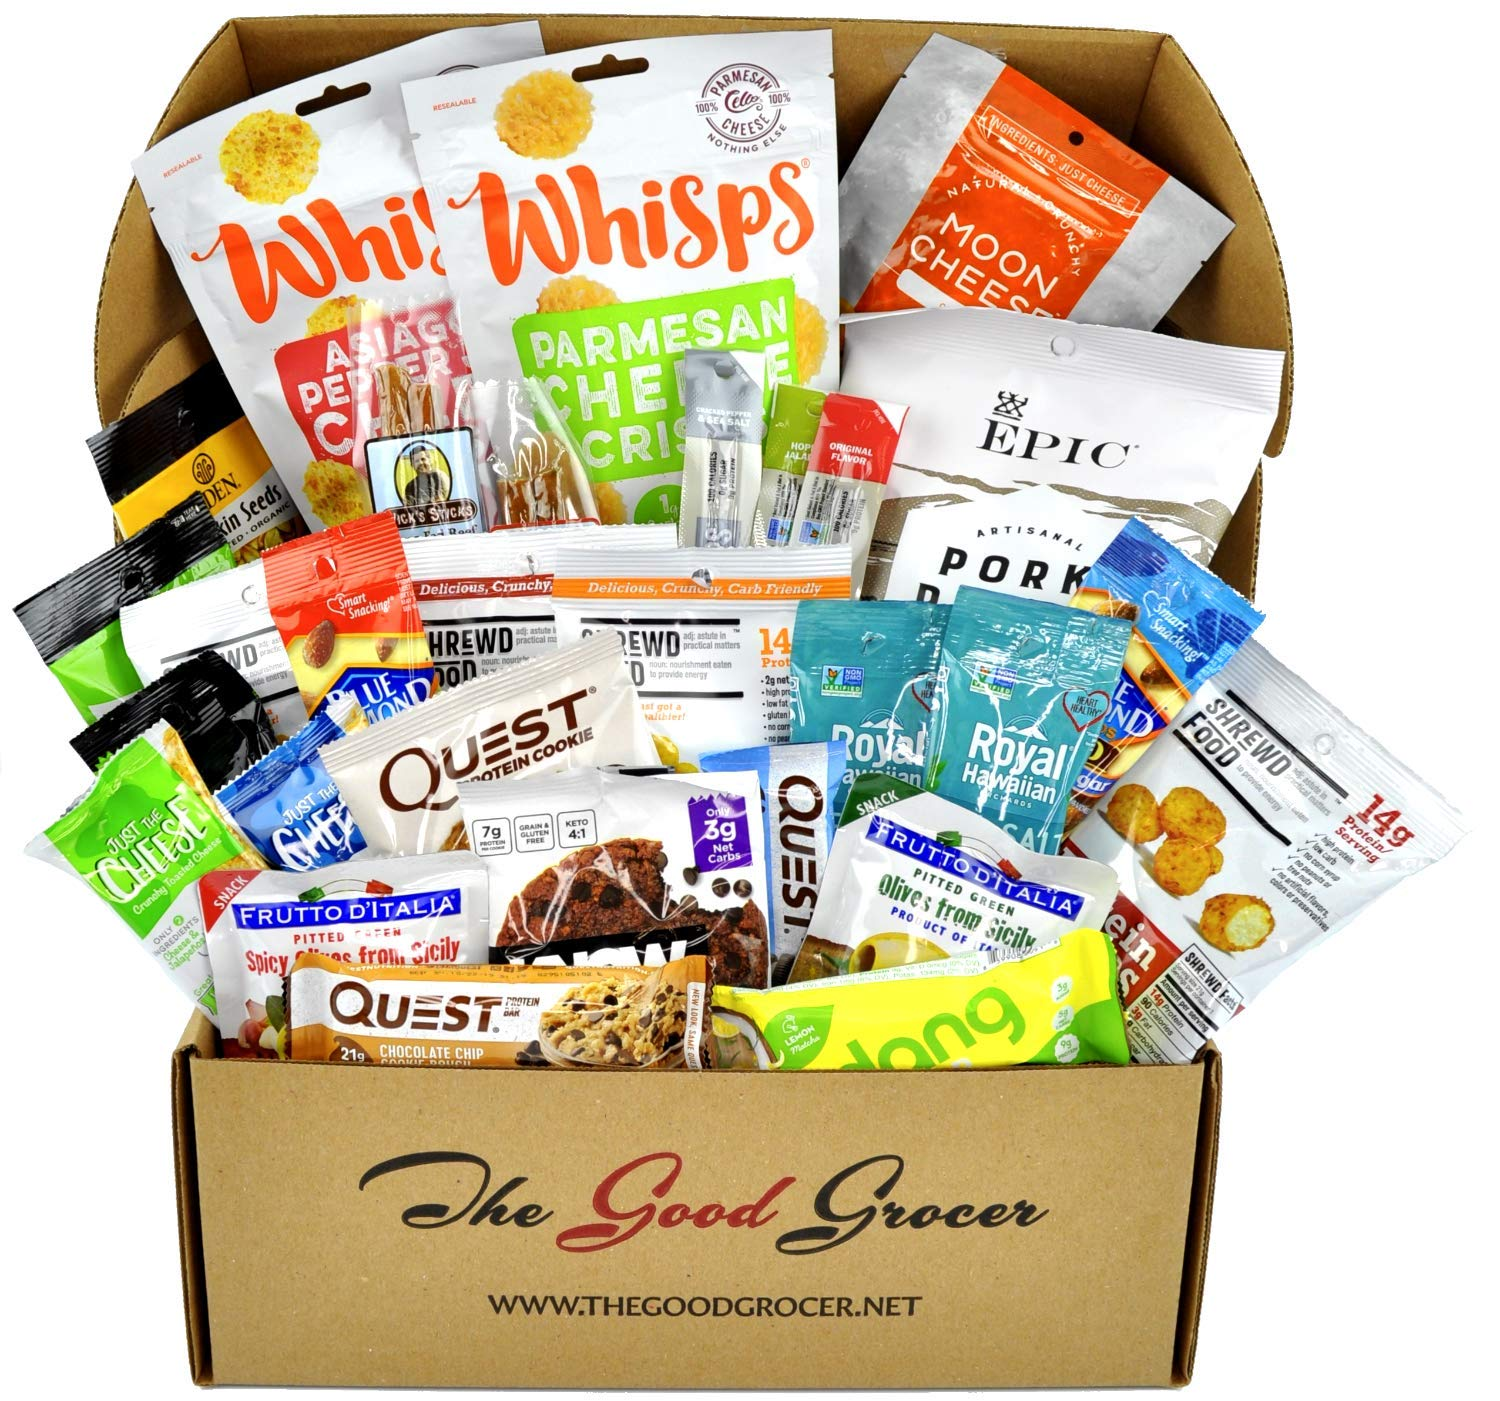 Deluxe KETO Friendly Snacks Care Package (30ct): Ultra Low Carb, Gluten Free, Low Sugar, Pork Rinds, Grass Fed Meat Sticks, Bars, Crispy Cheese, Nuts, Healthy Keto Gift Box Variety Pack by The Good Grocer